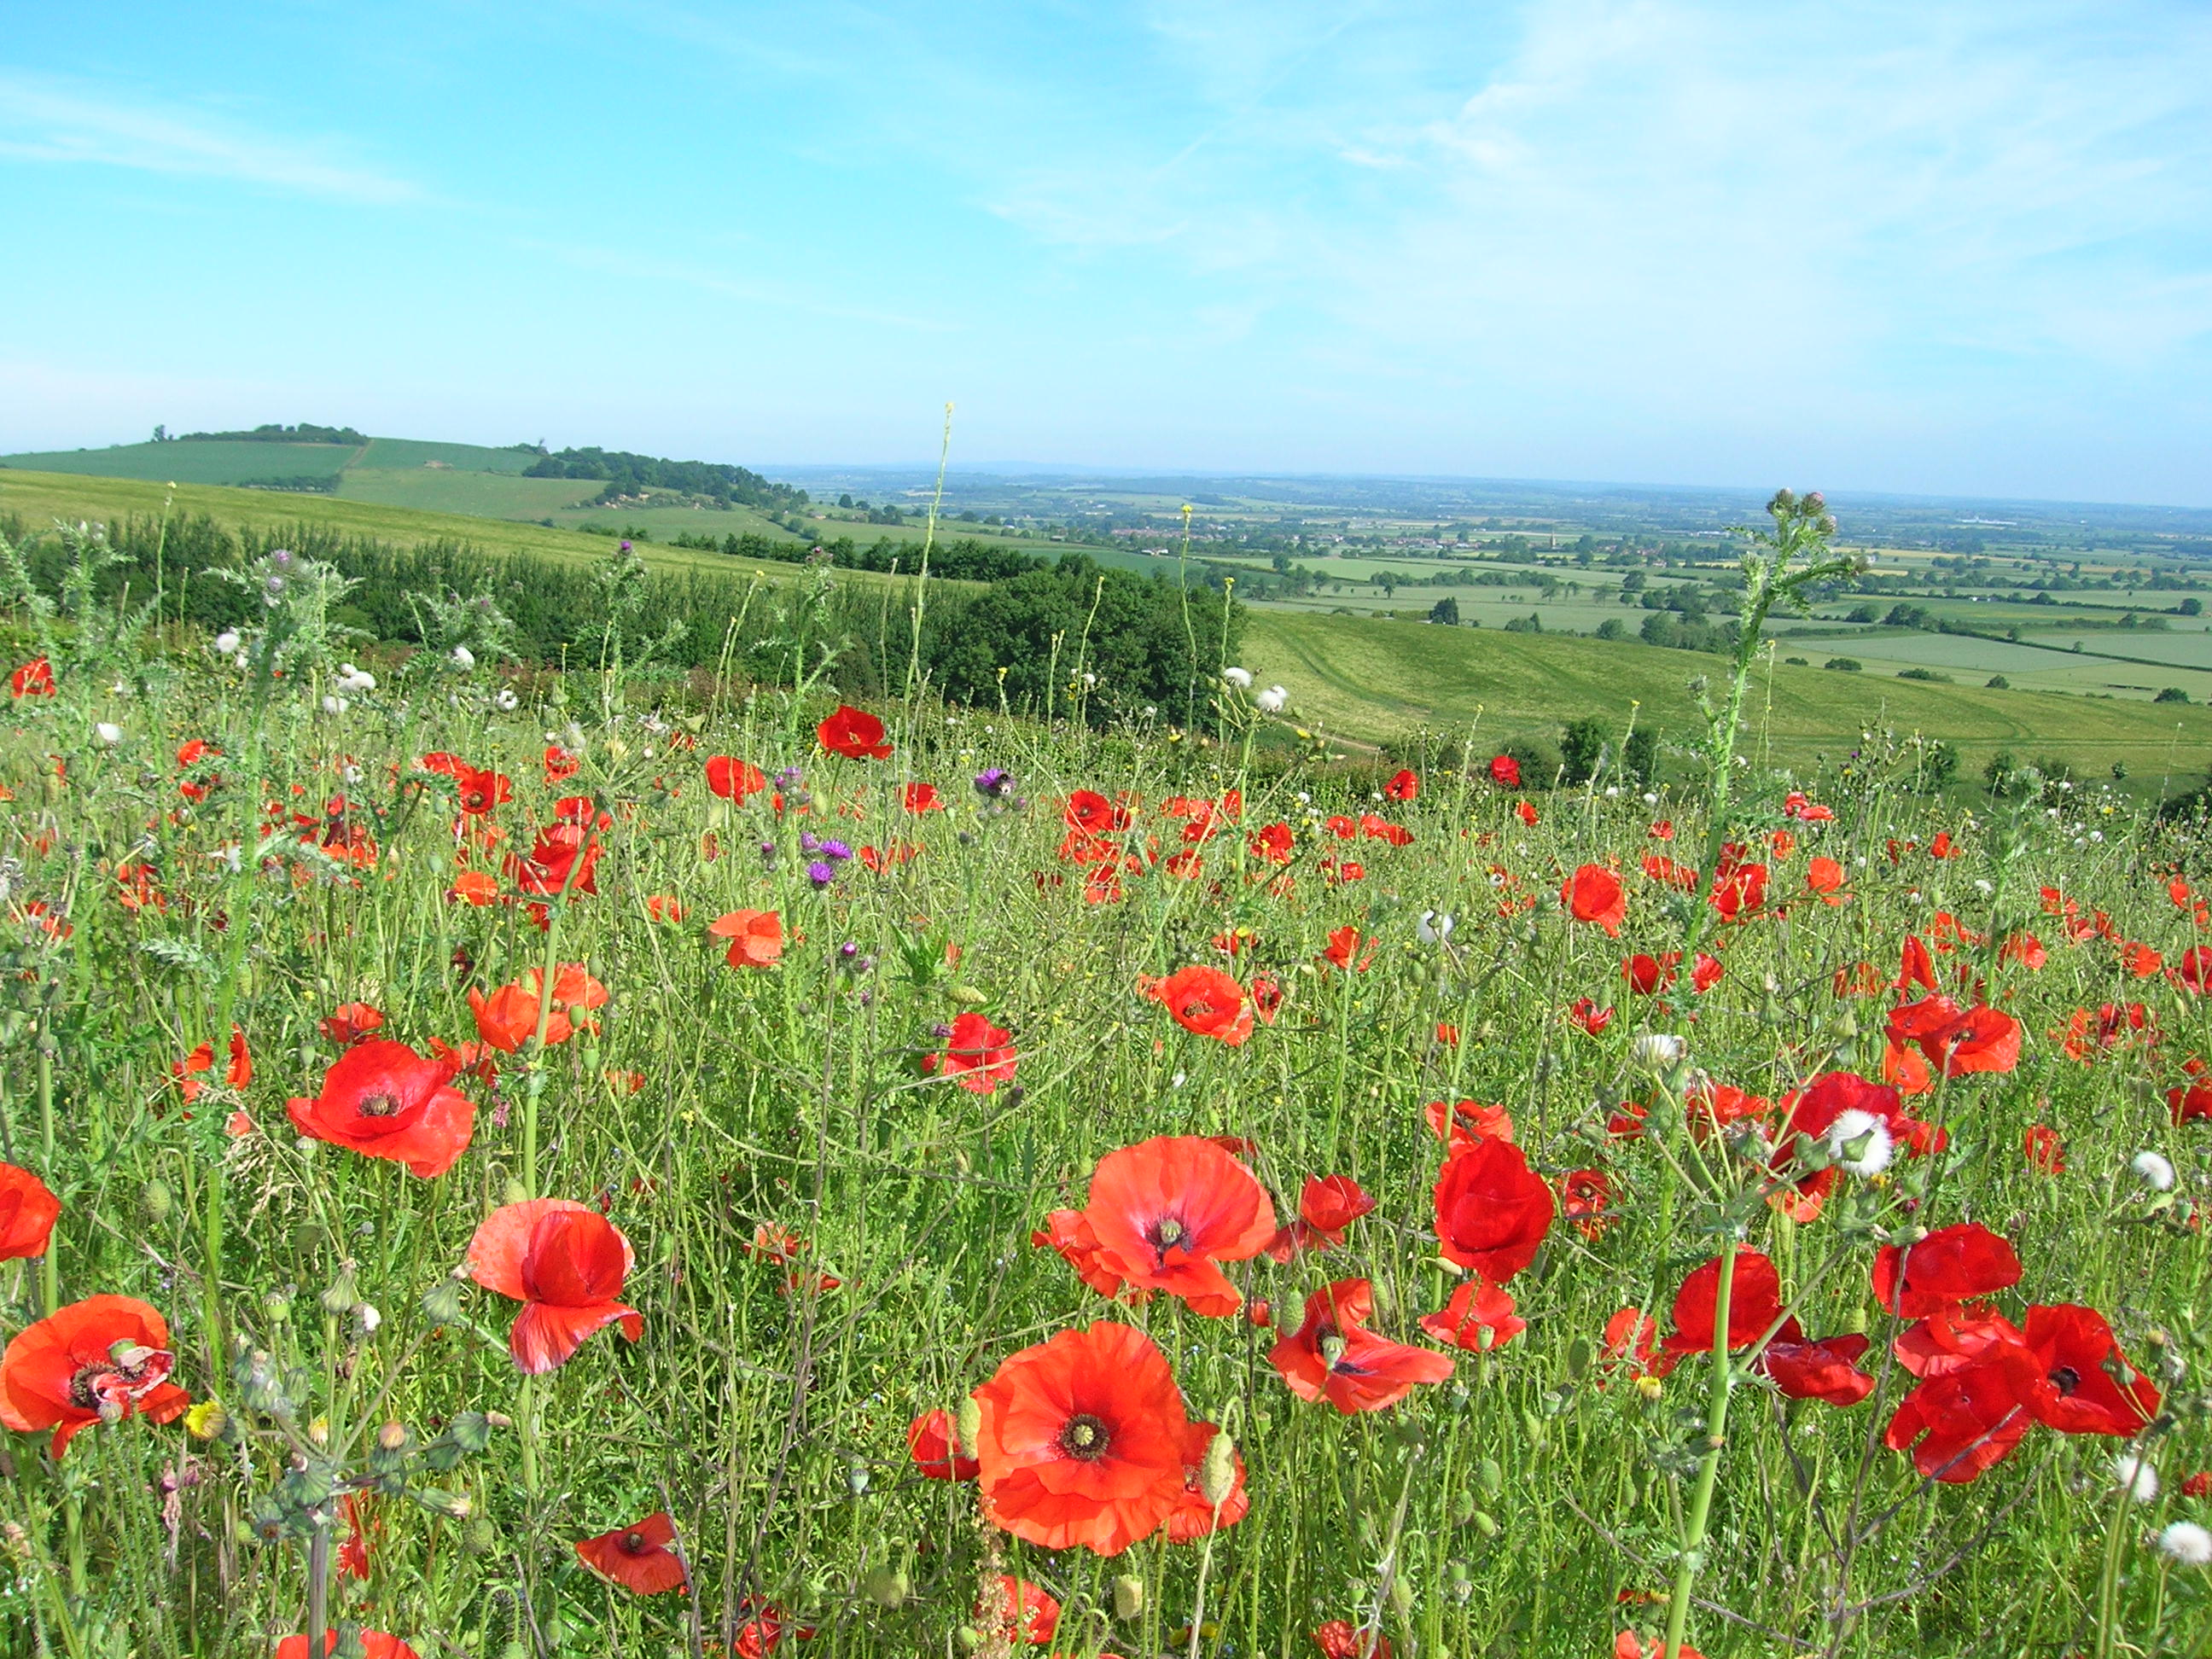 Photo of poppy fields on a beautiful blue sky day